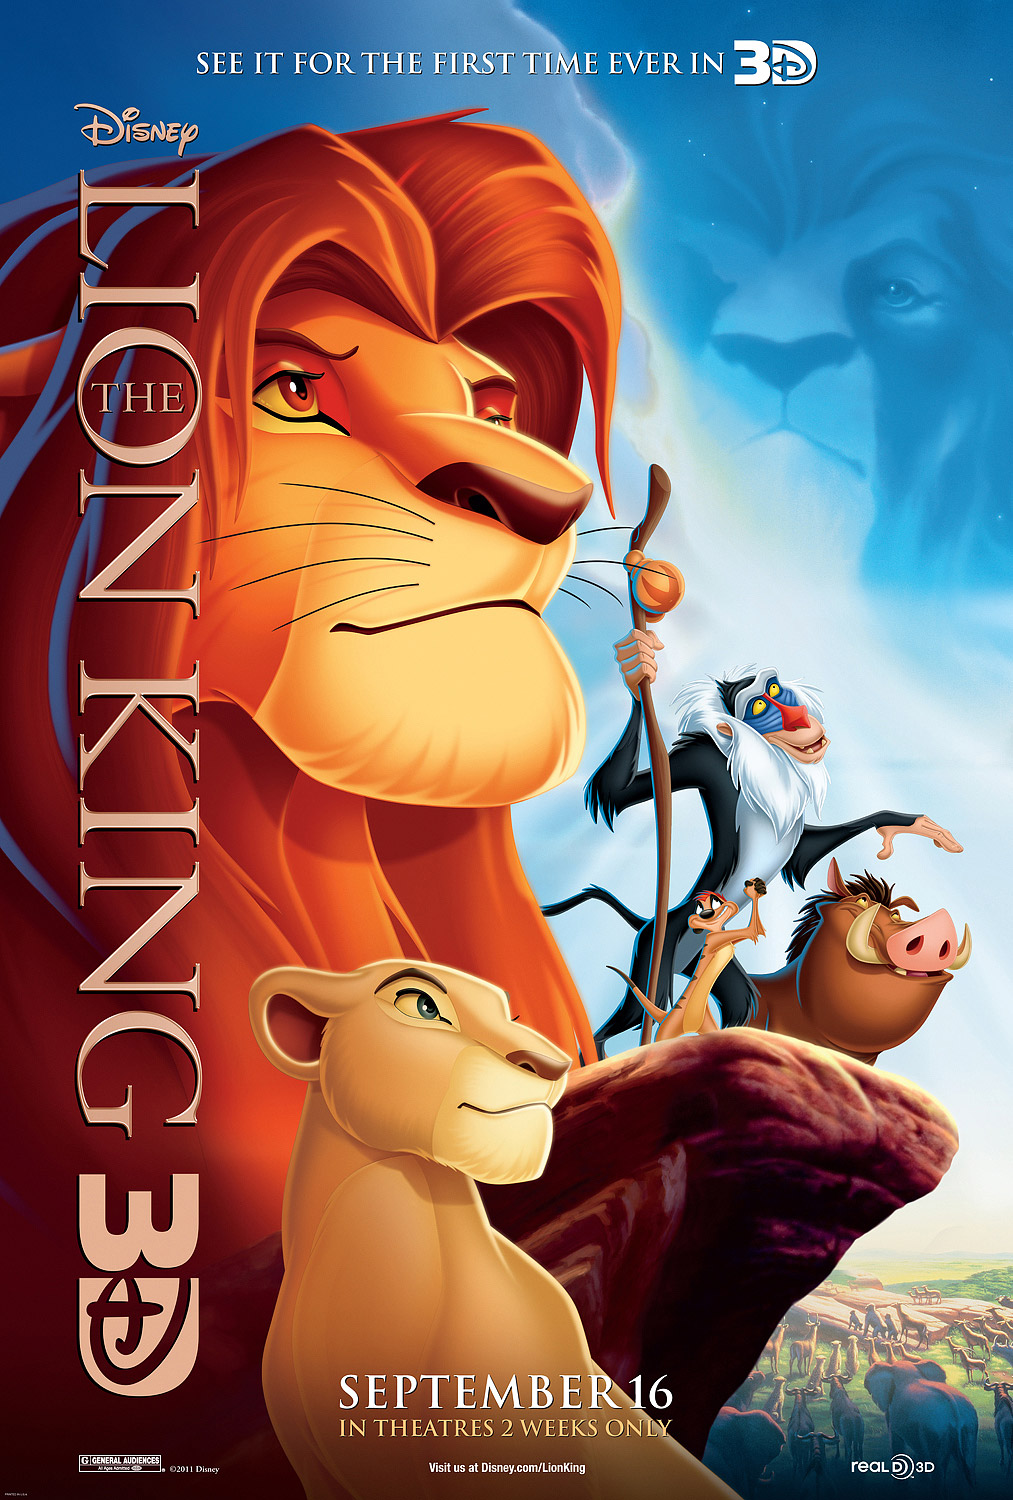 http://www.digitalmeetsculture.net/wp-content/uploads/2011/10/the-lion-king-3d-poster.jpg